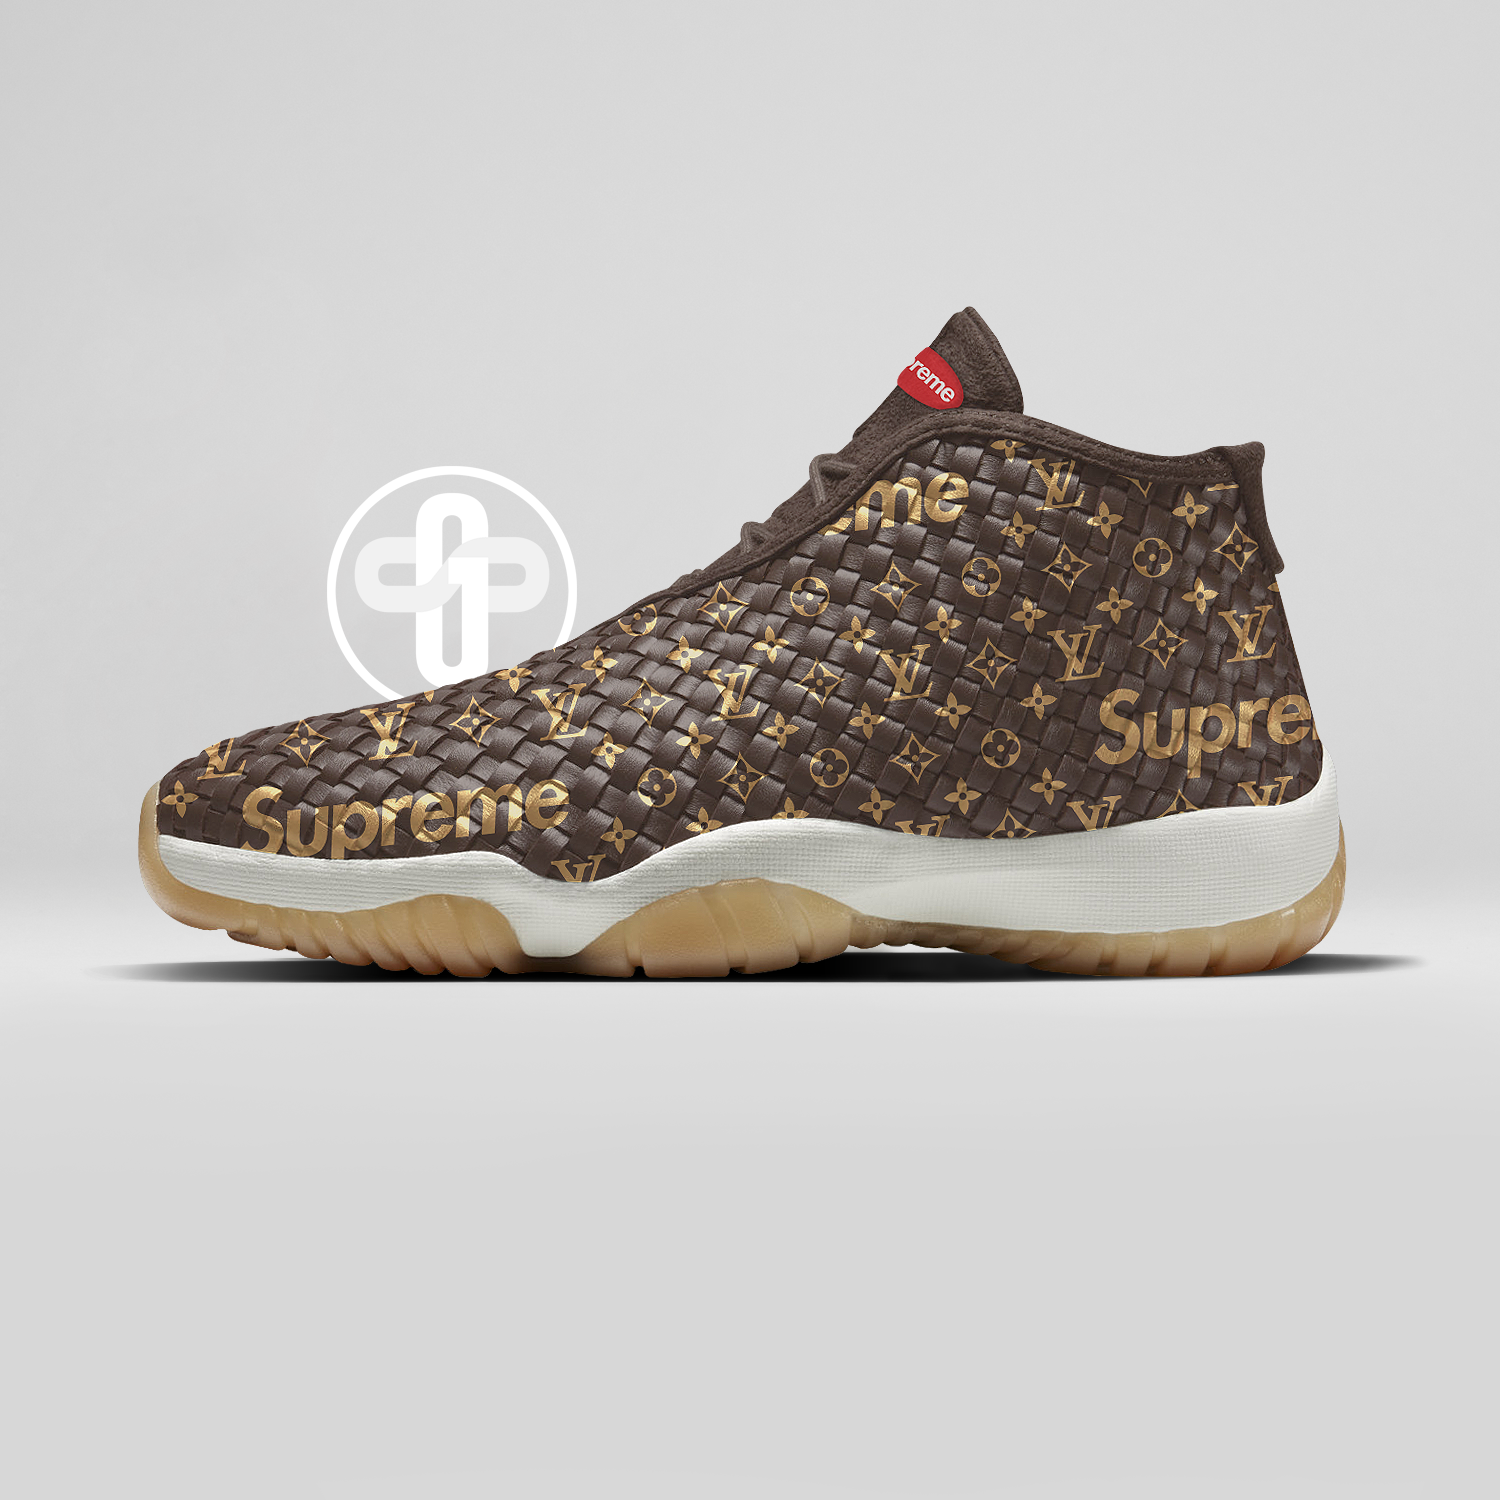 Louis Vuitton x Supreme x Air Jordan Future Dark Chocolate